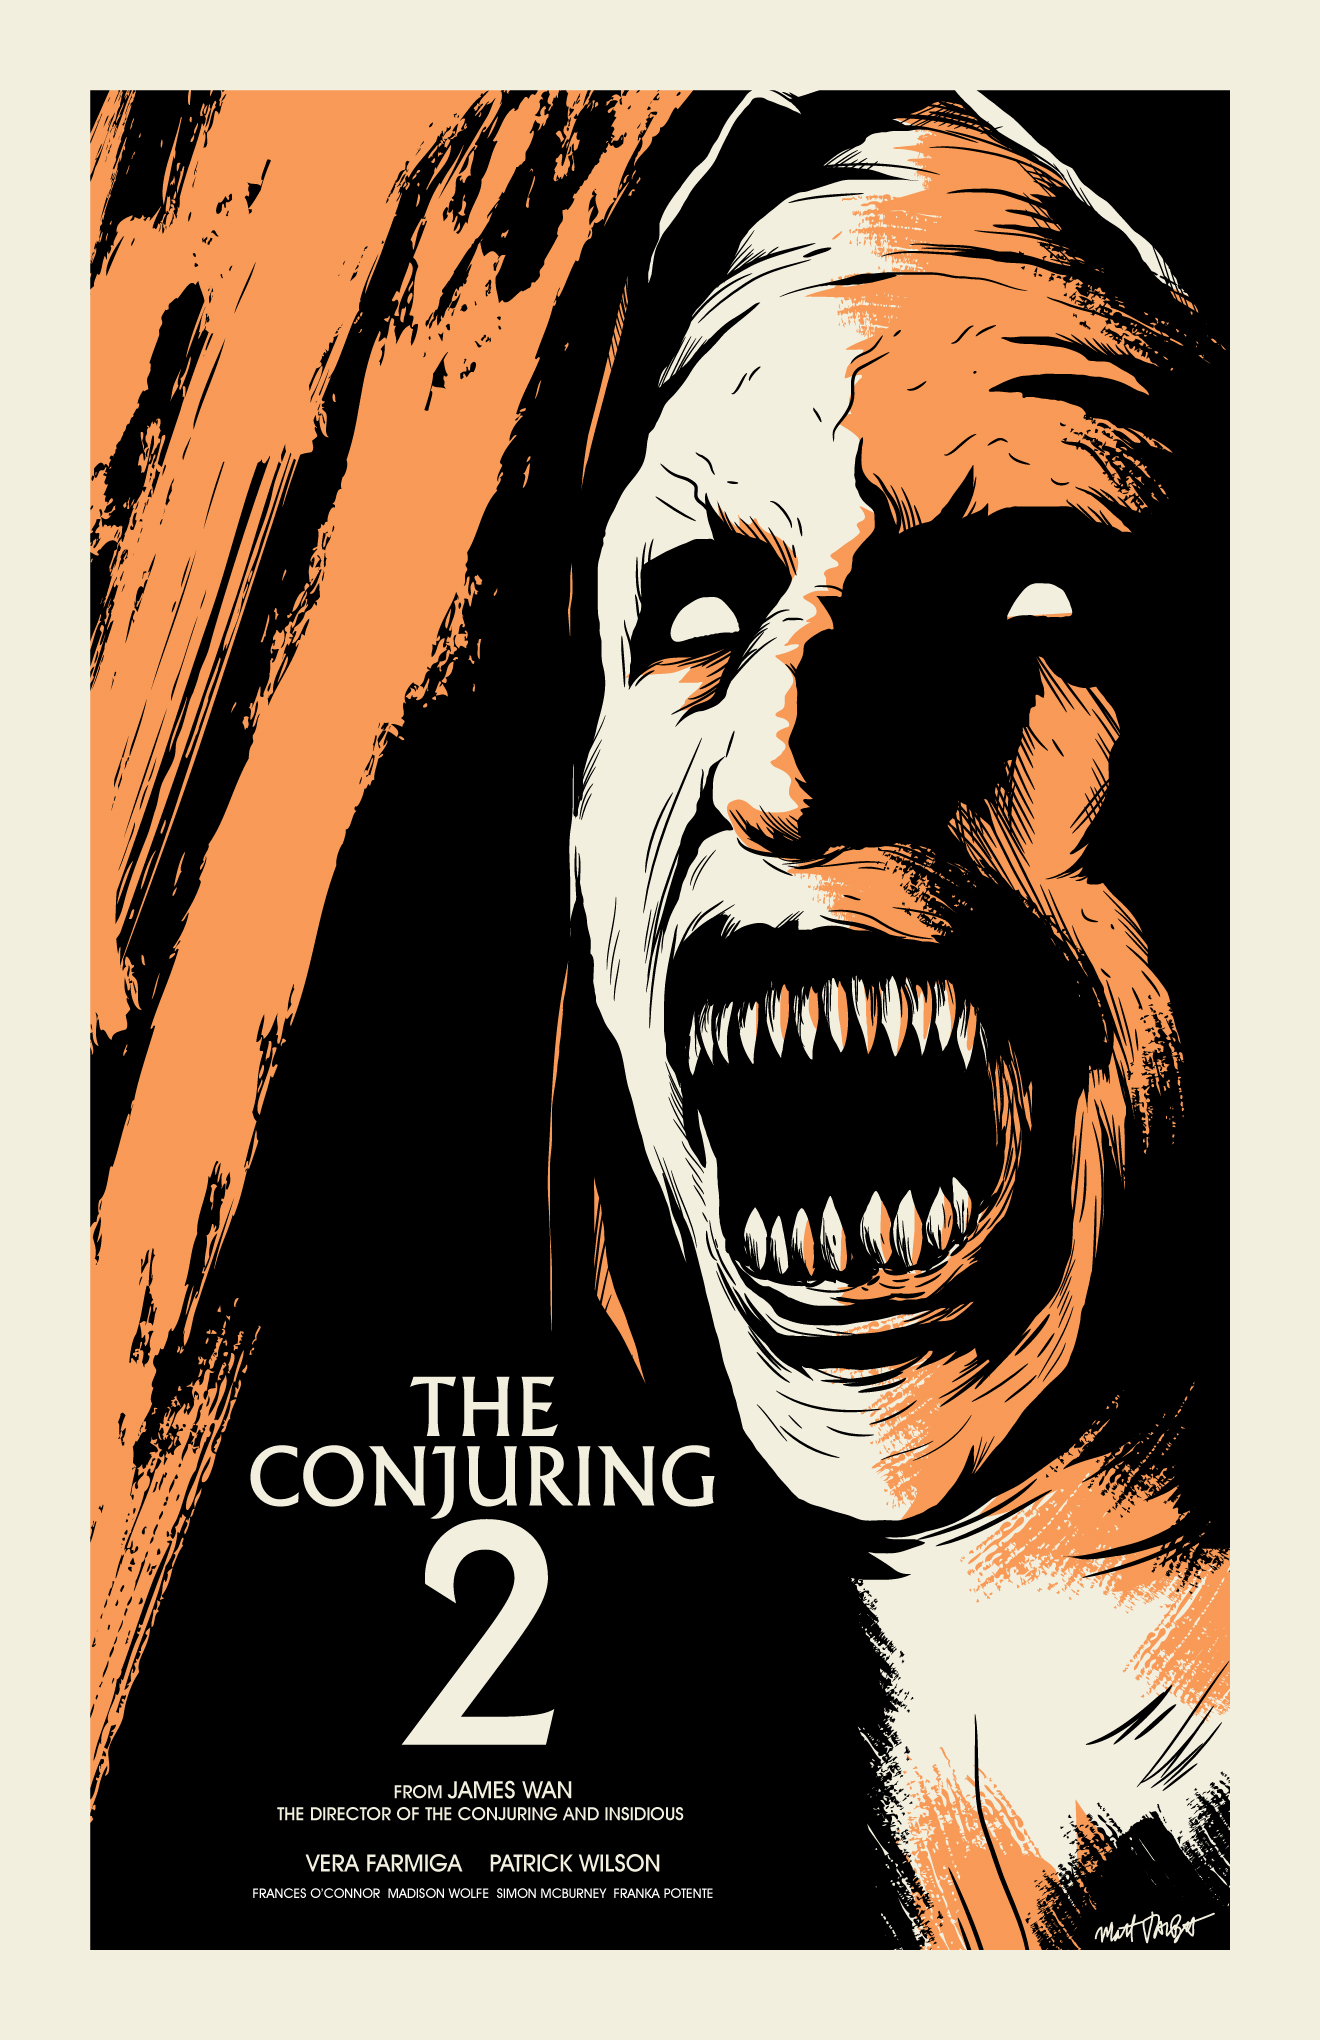 The Conjuring 2 poster by Matt Talbot